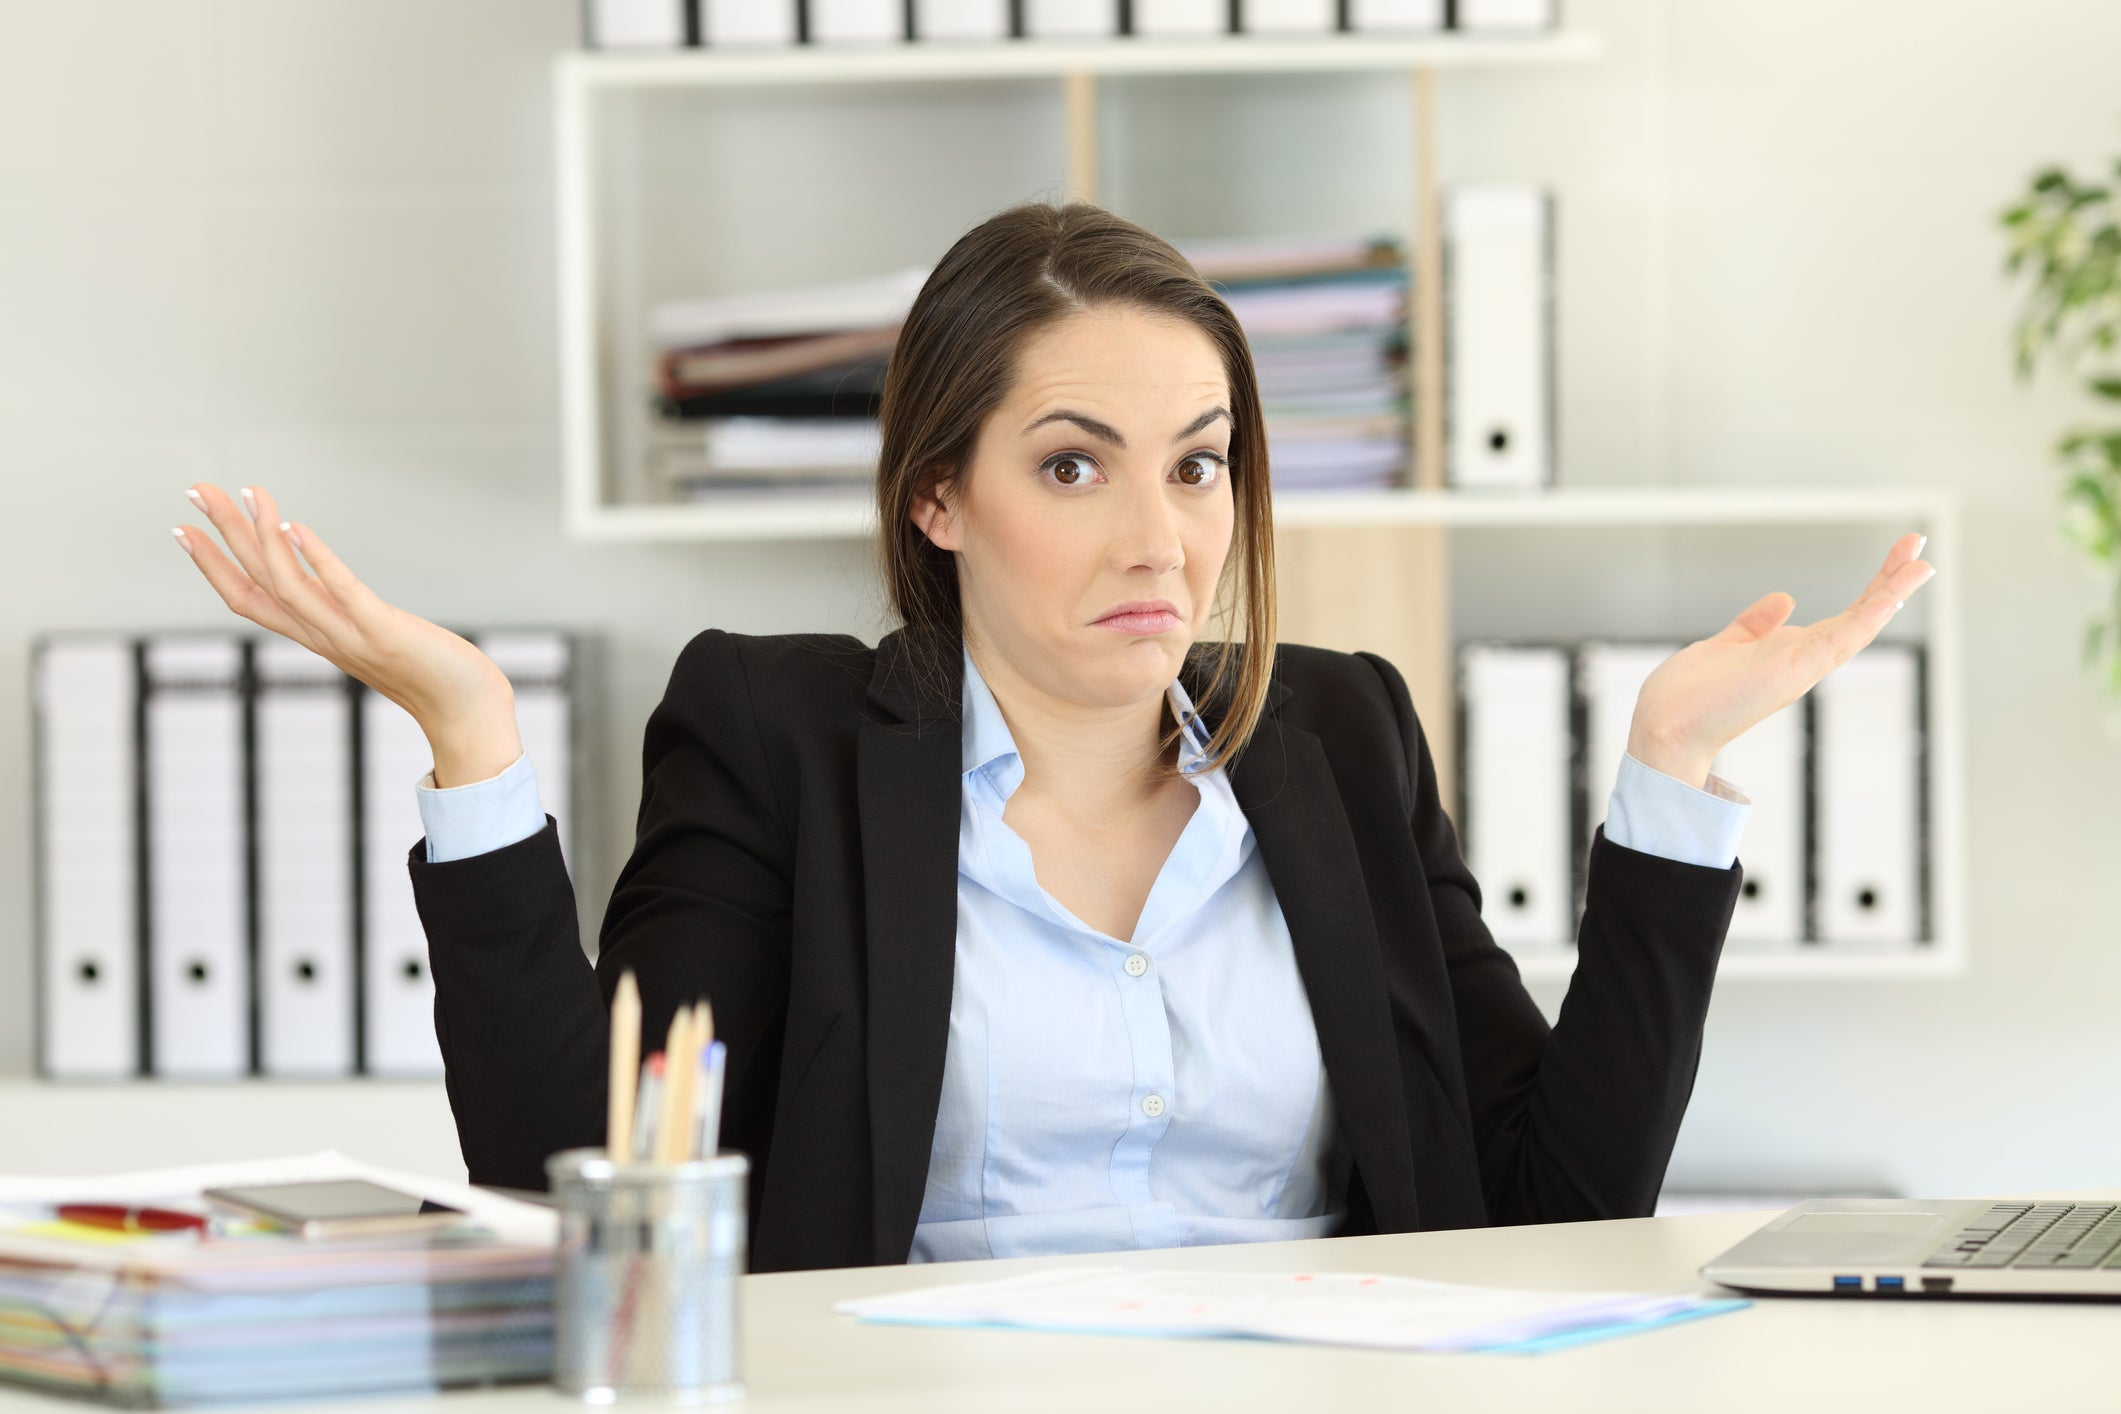 Woman sitting at desk holding her hands up as if confused